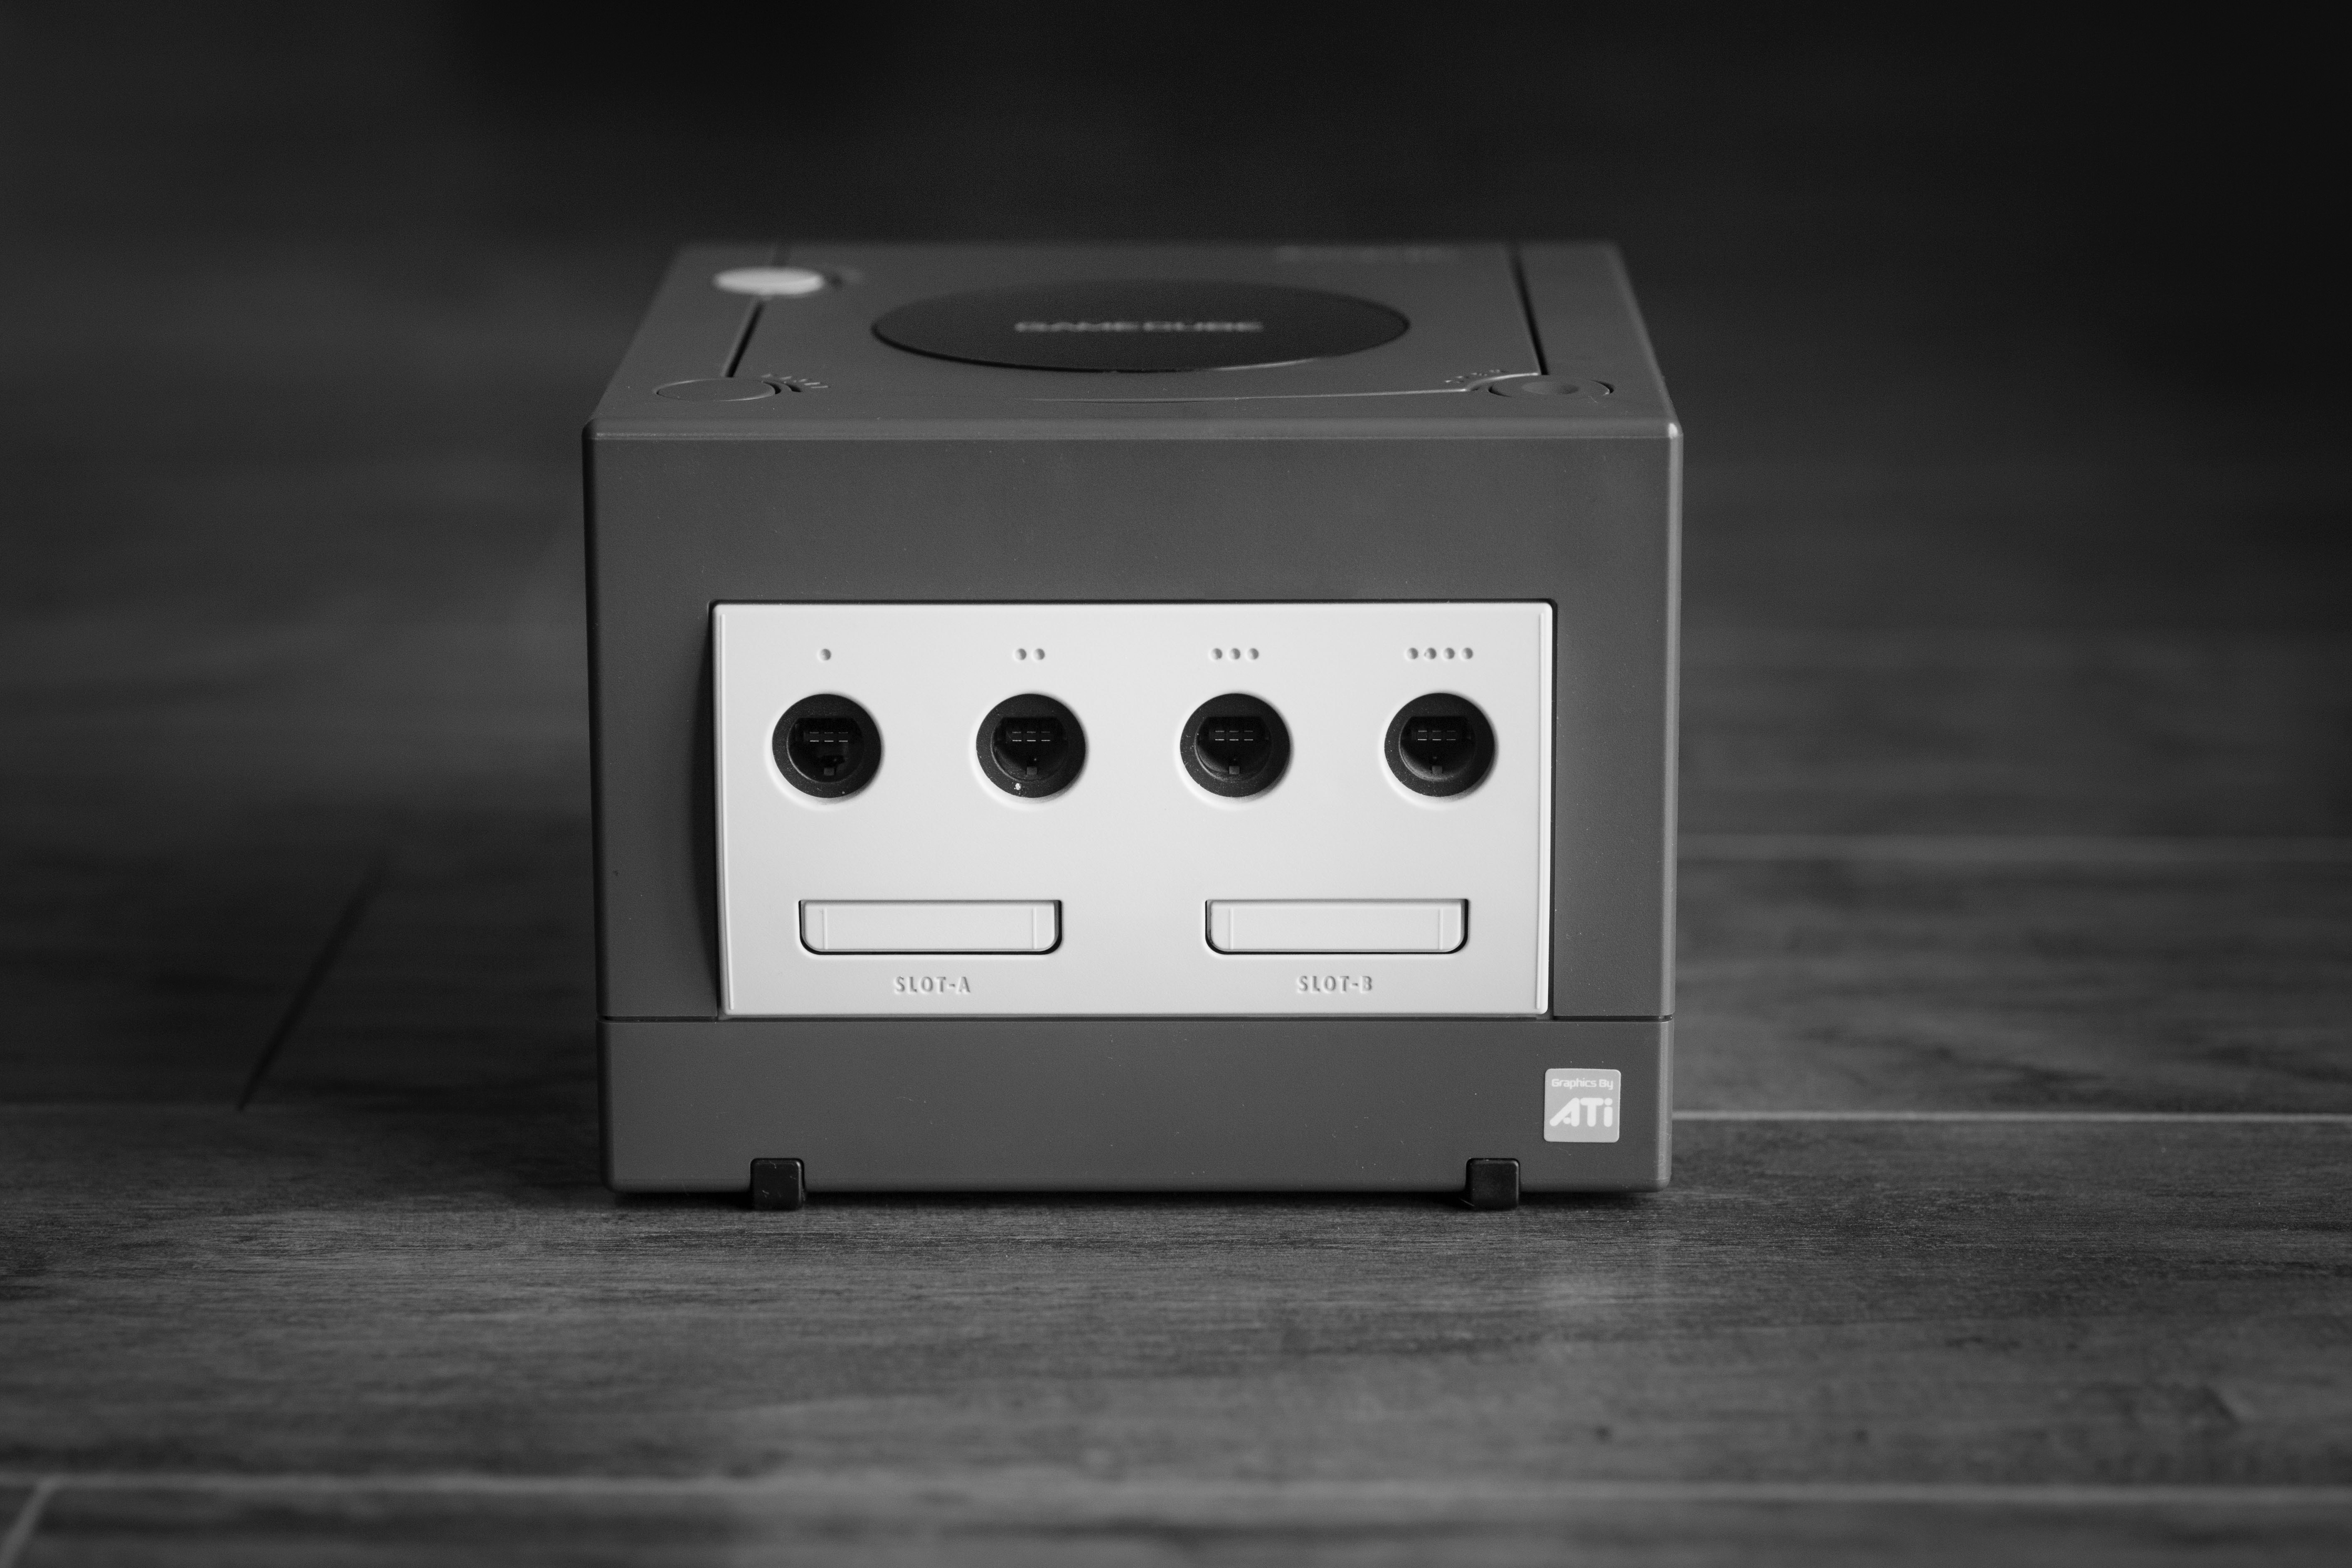 picture of a Nintendo GameCube